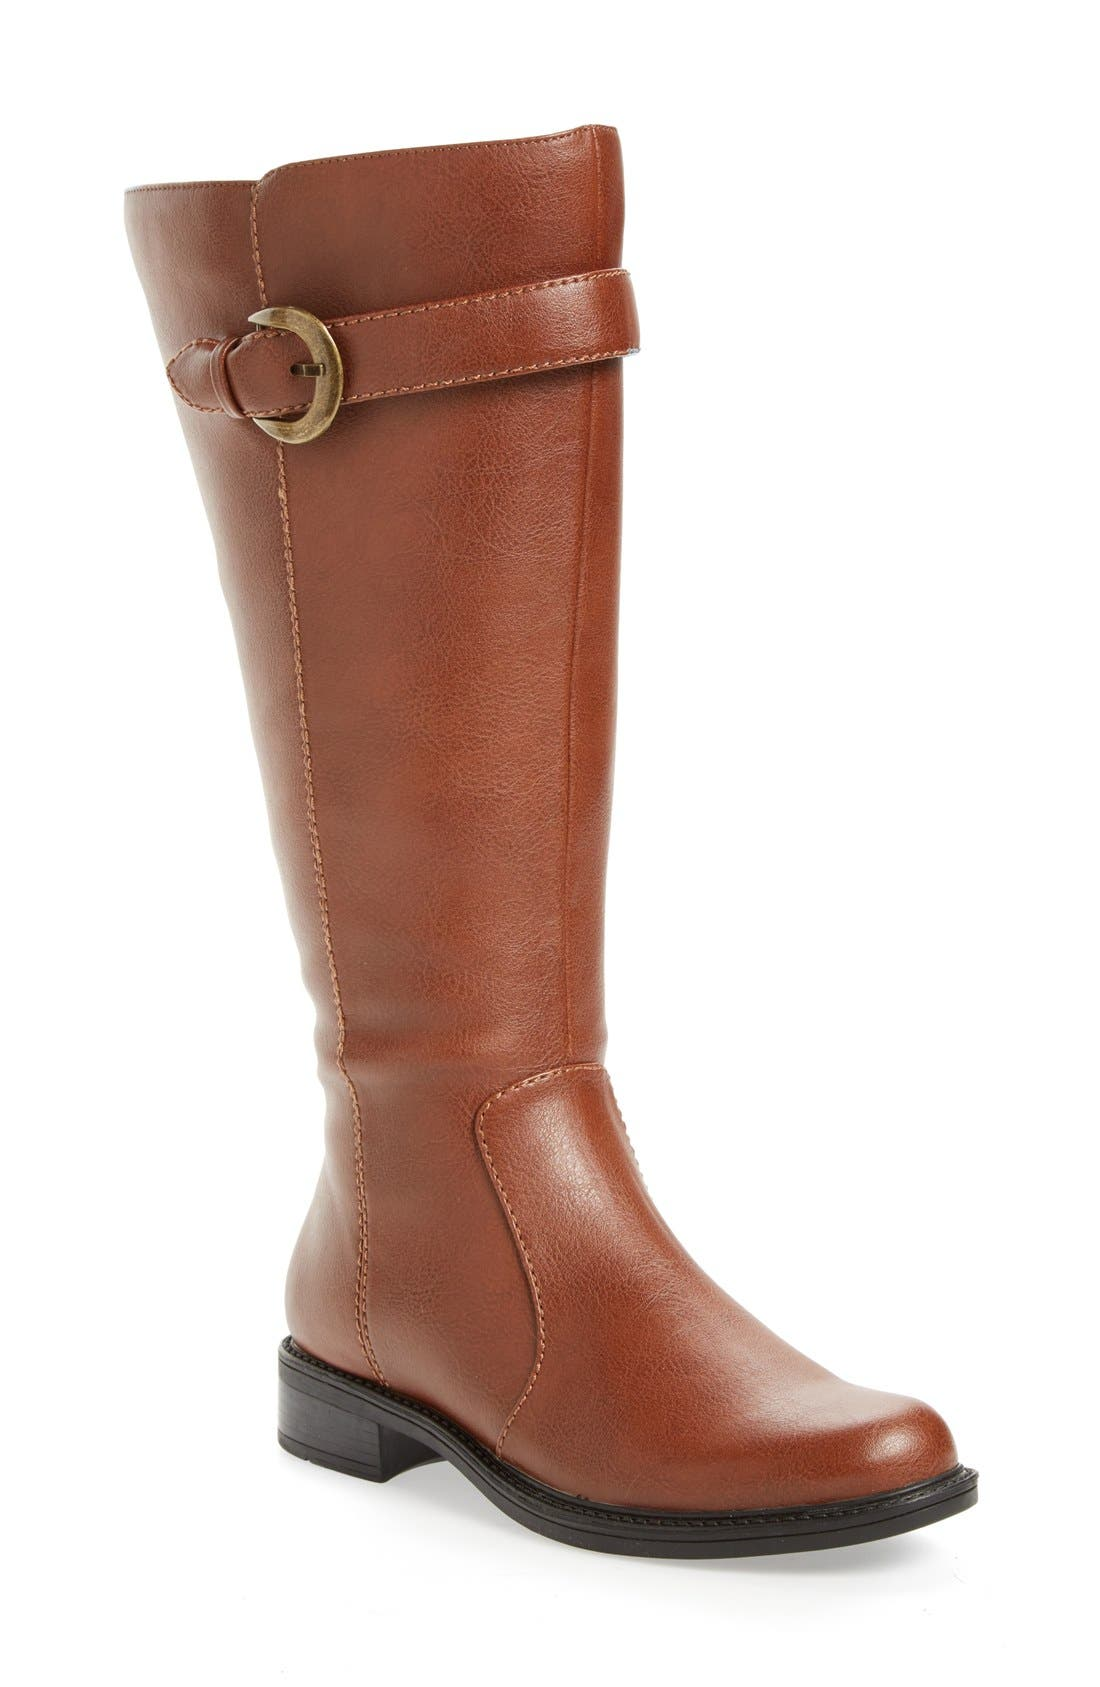 DAVID TATE 'Stallion' Riding Boot